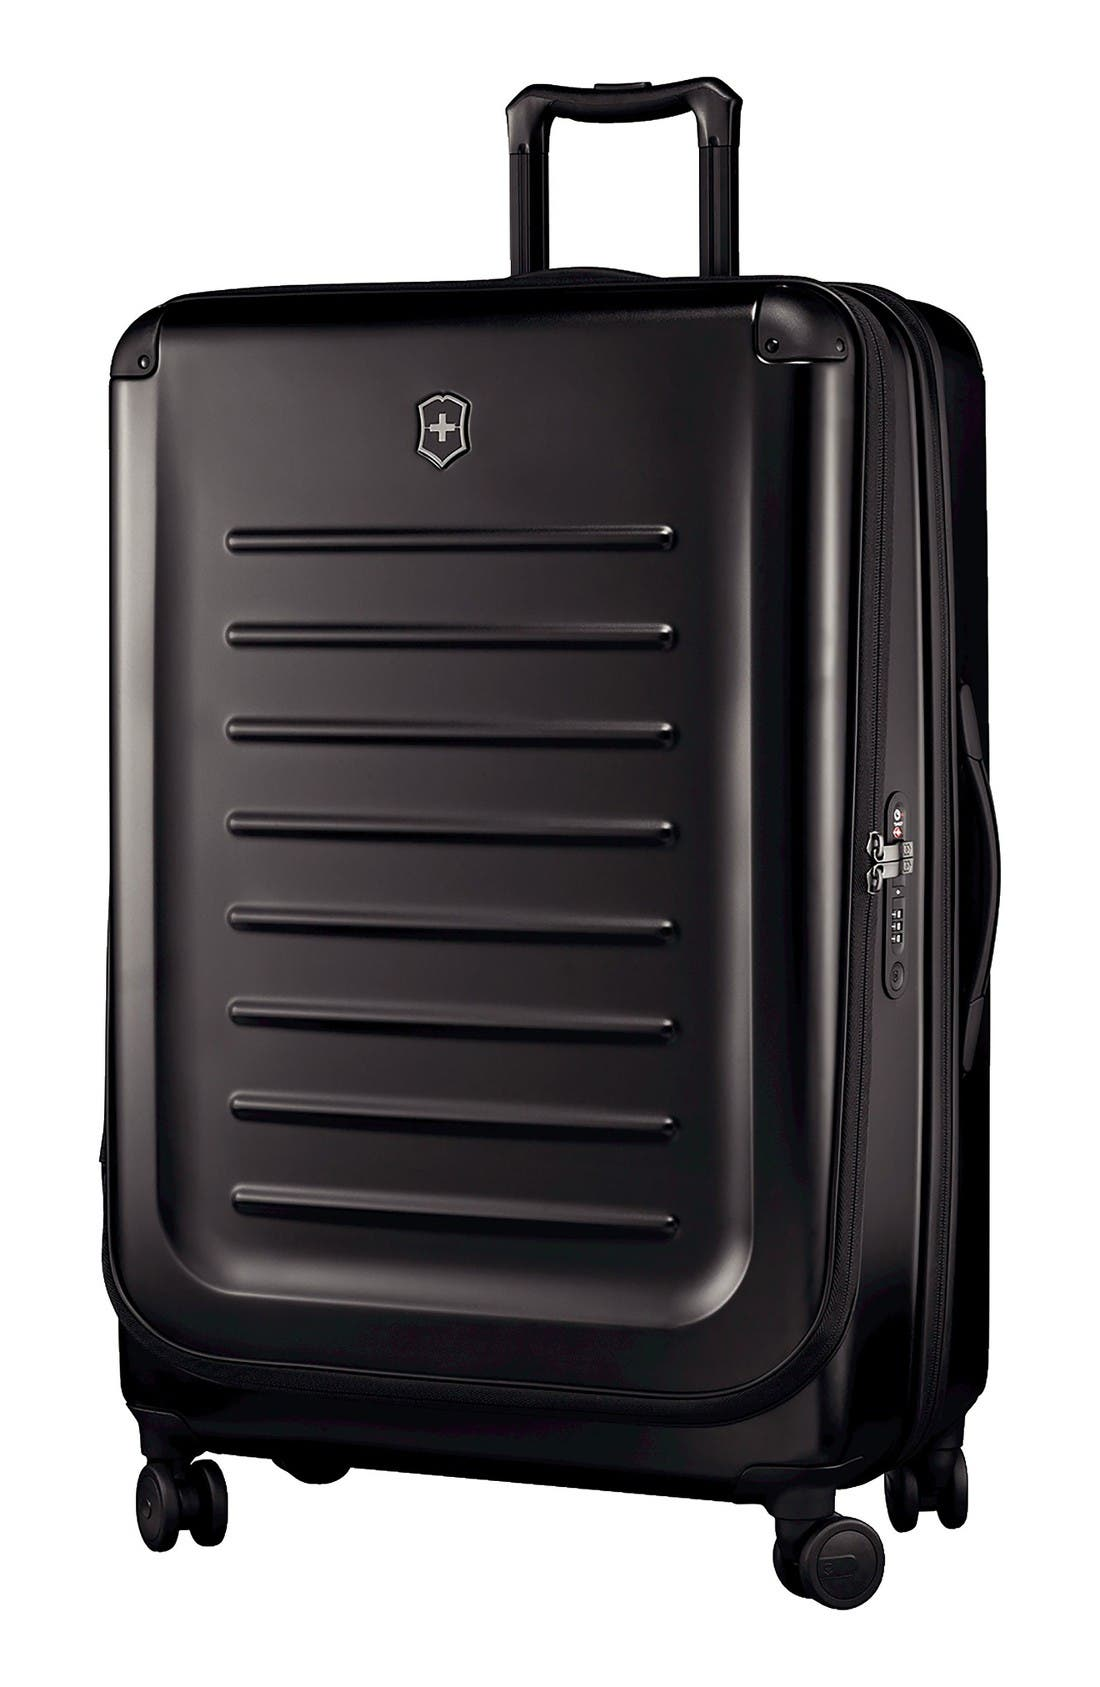 Spectra 2.0 32 Inch Hard Sided Rolling Travel Suitcase,                         Main,                         color, Black